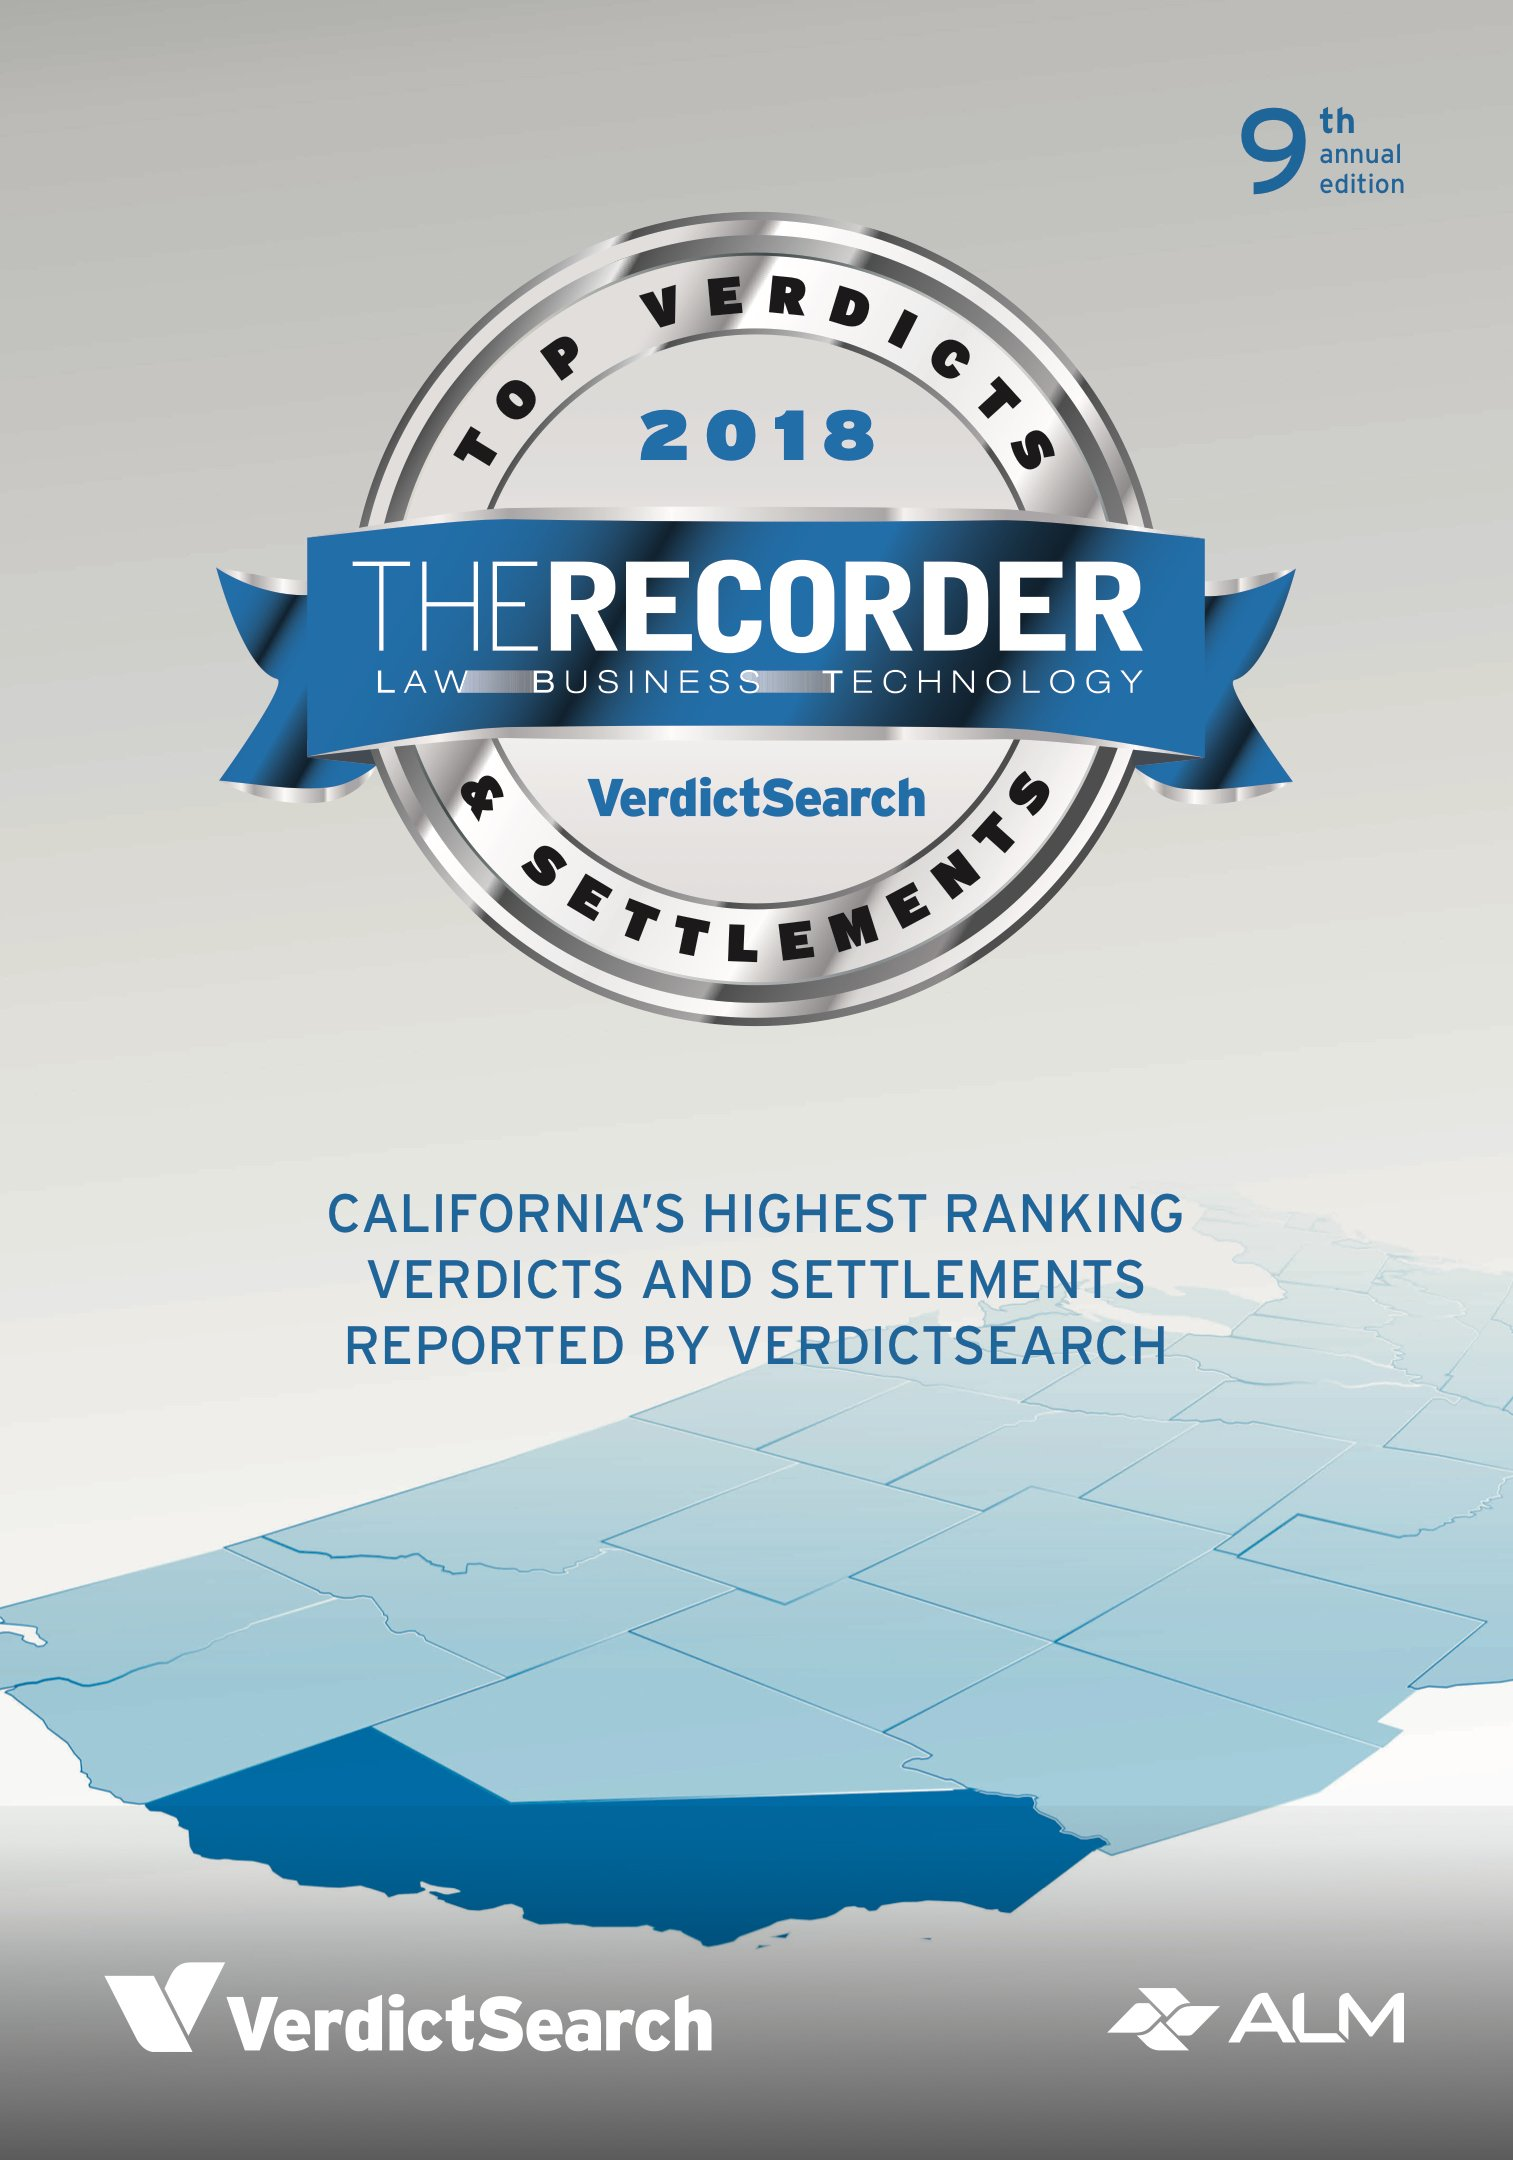 2018 Recorder's Top California Verdicts and Settlements